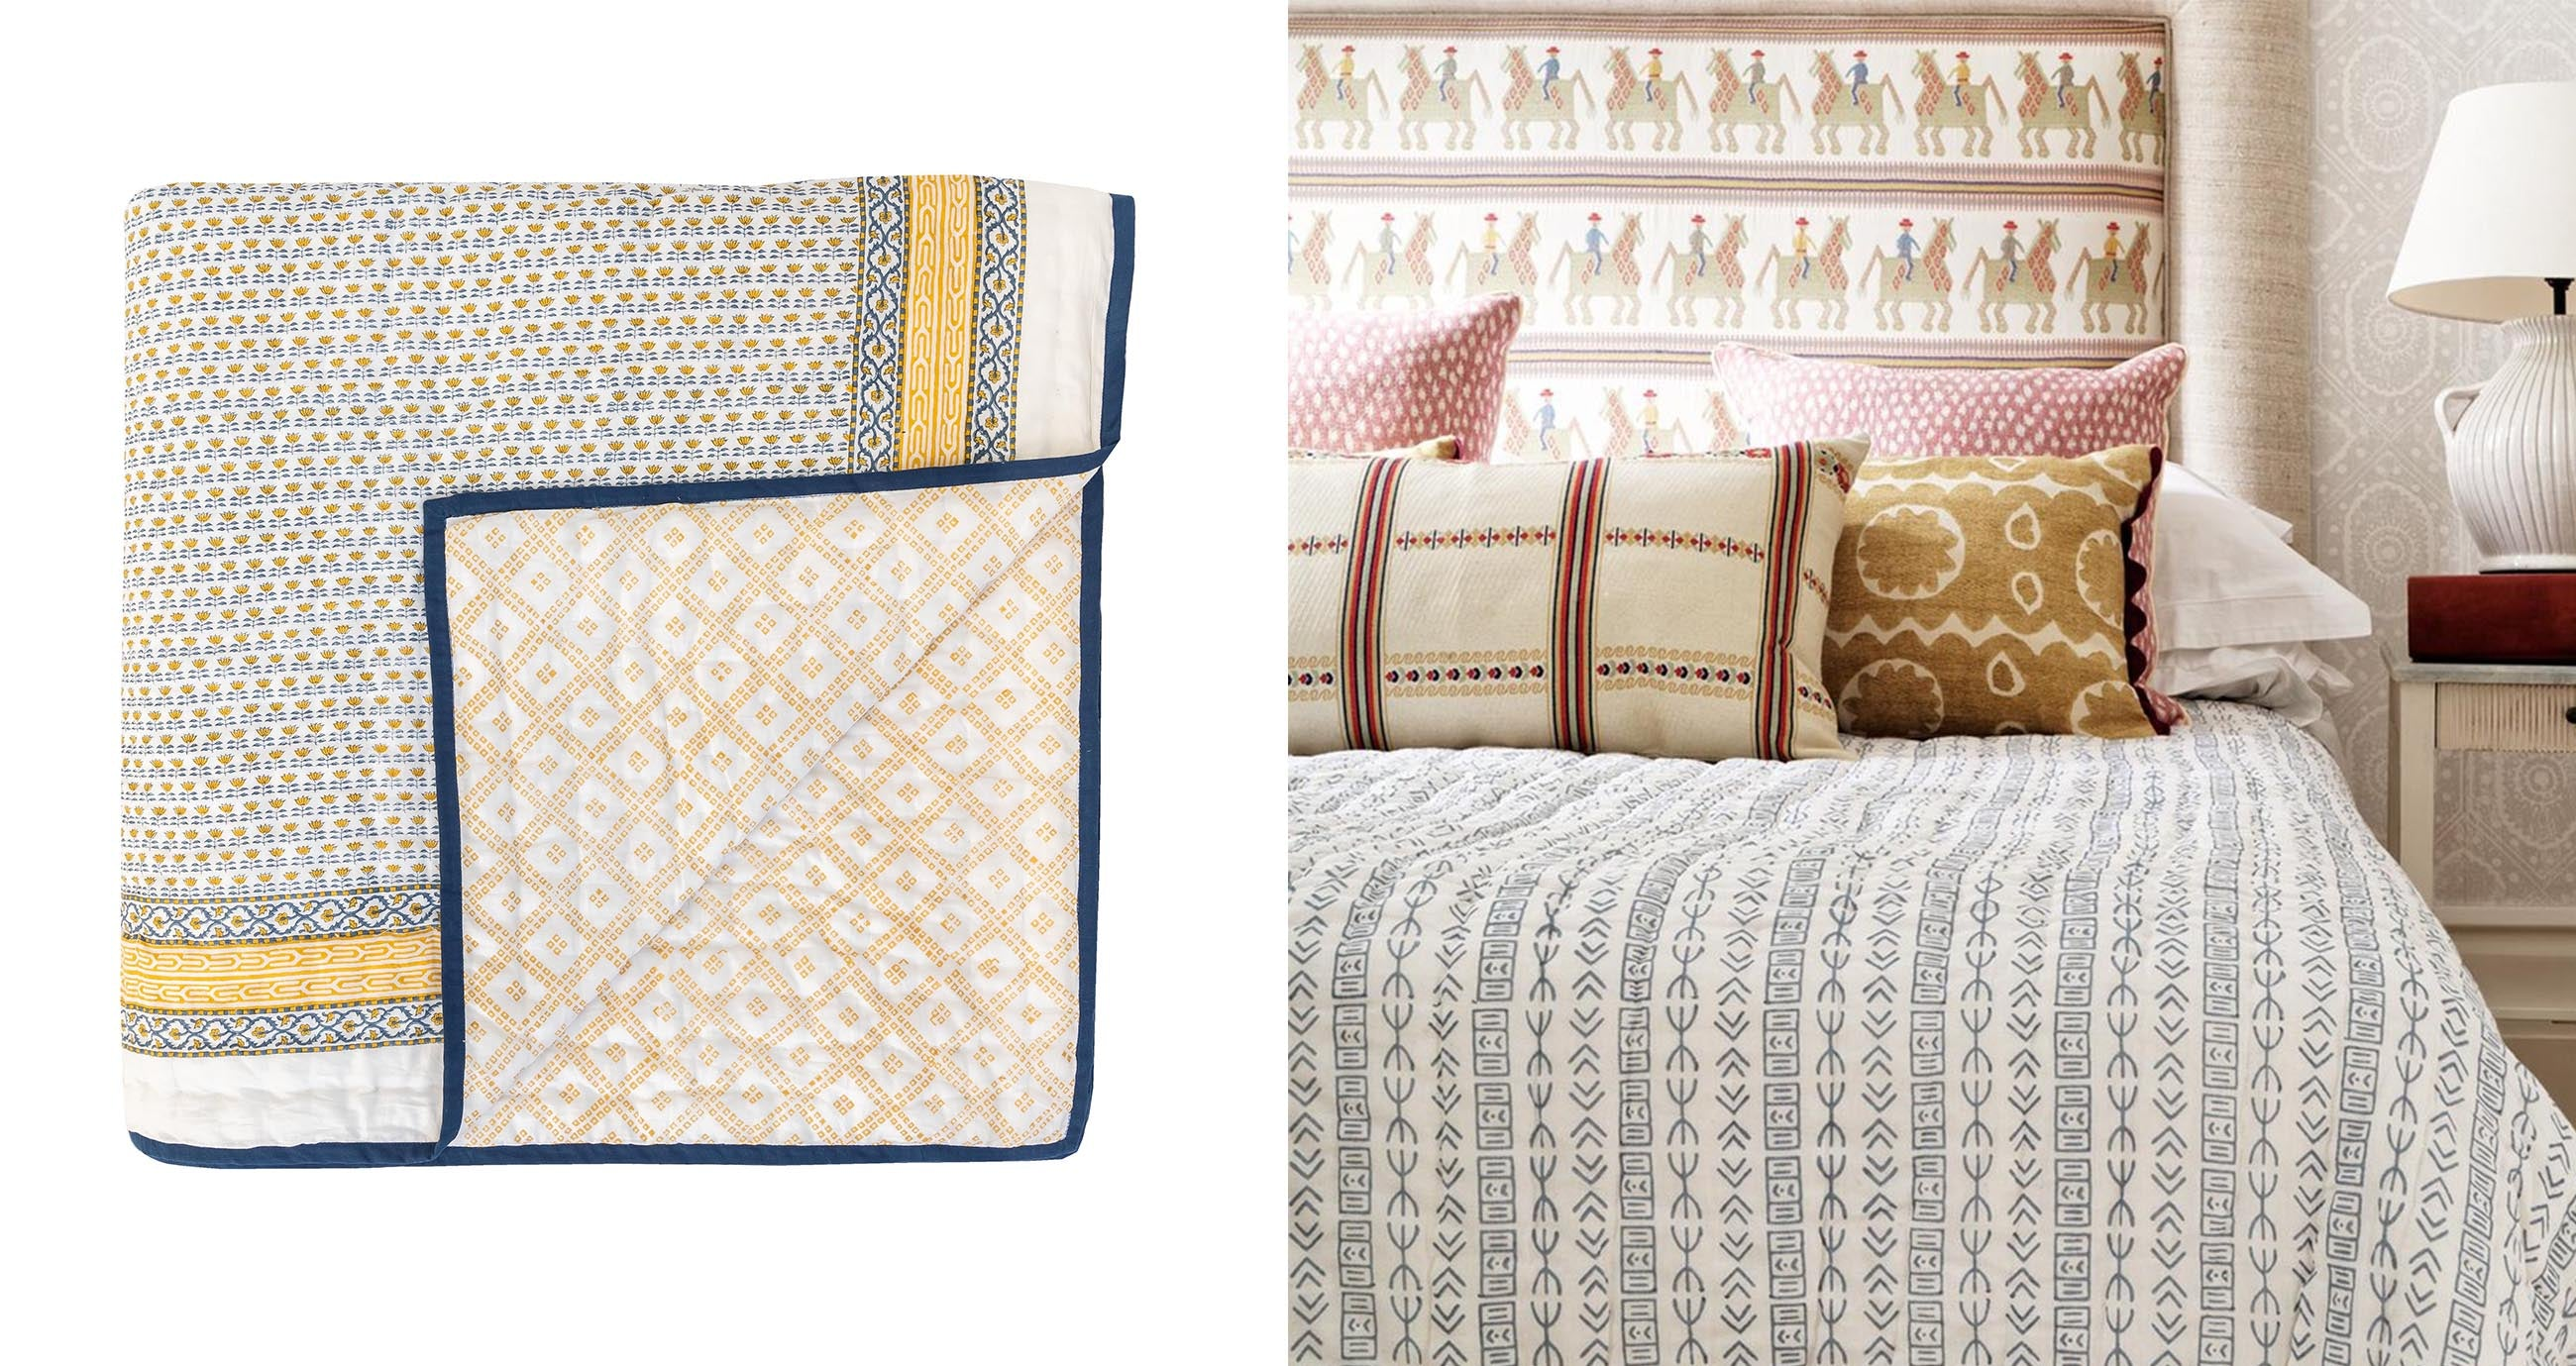 wicklewood quilts are reversible and hand block printed in india